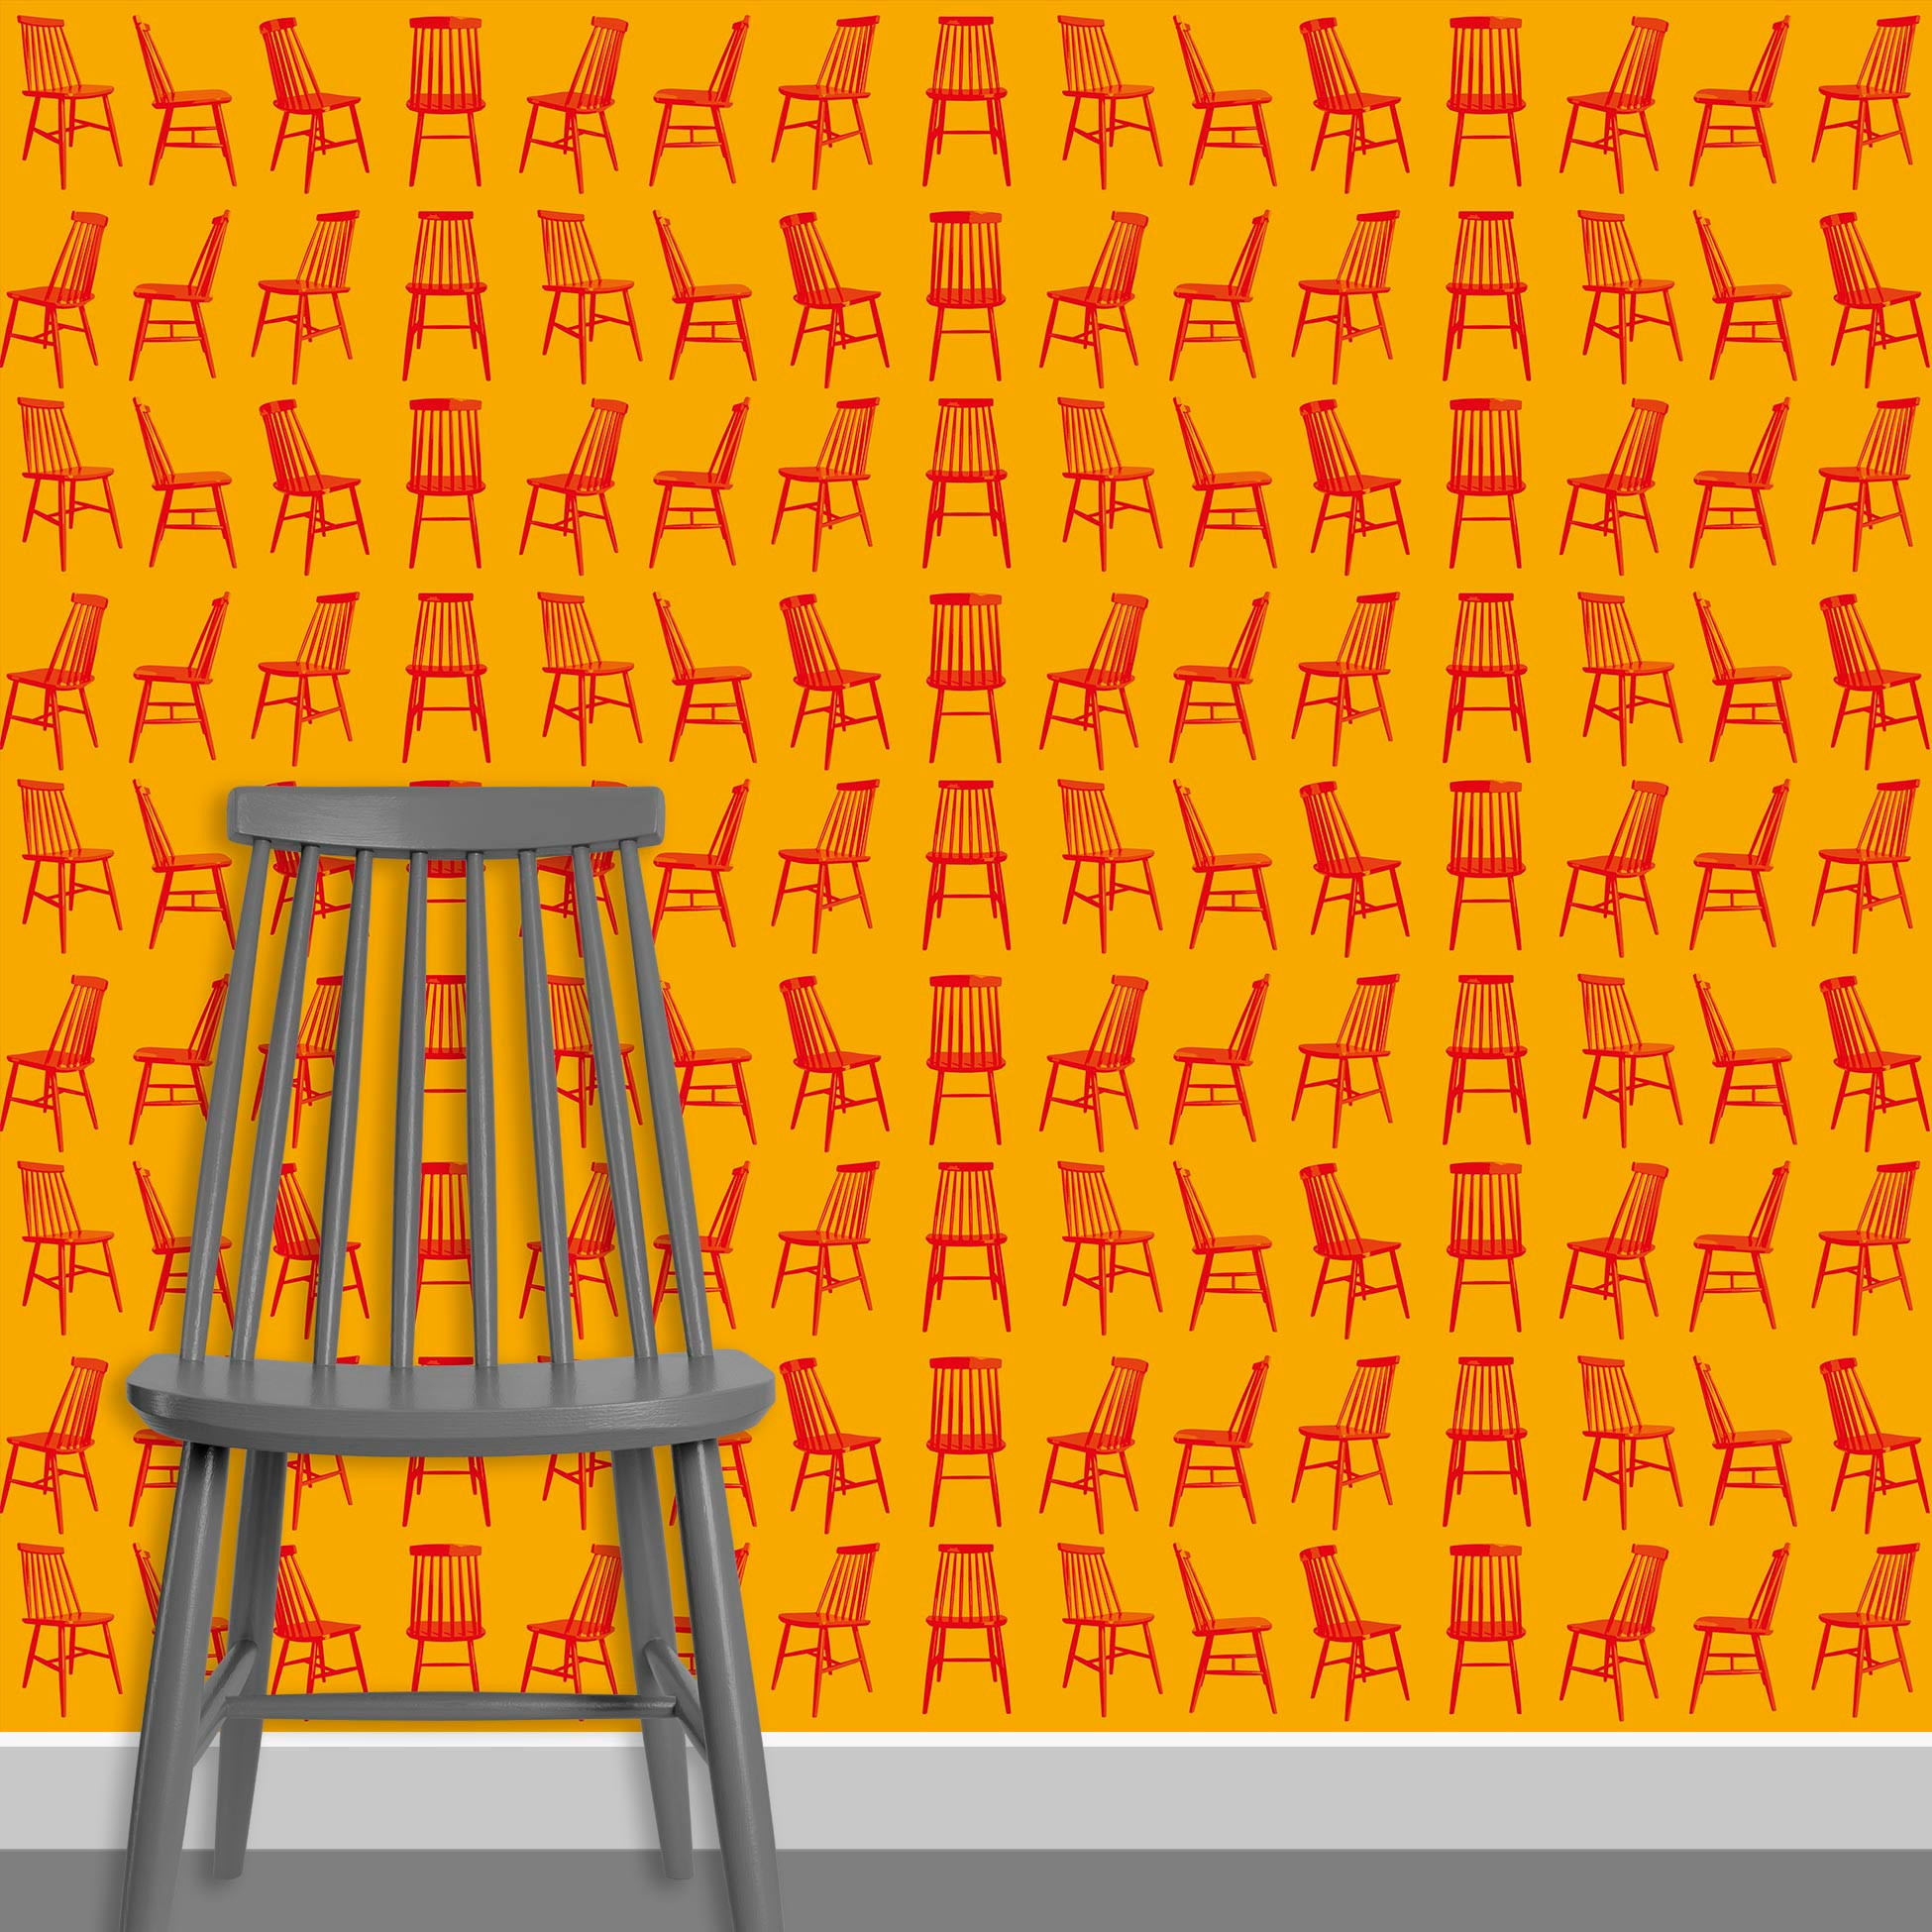 Contact Page Square - Mid Century Modern Chairs Pattern Design 4